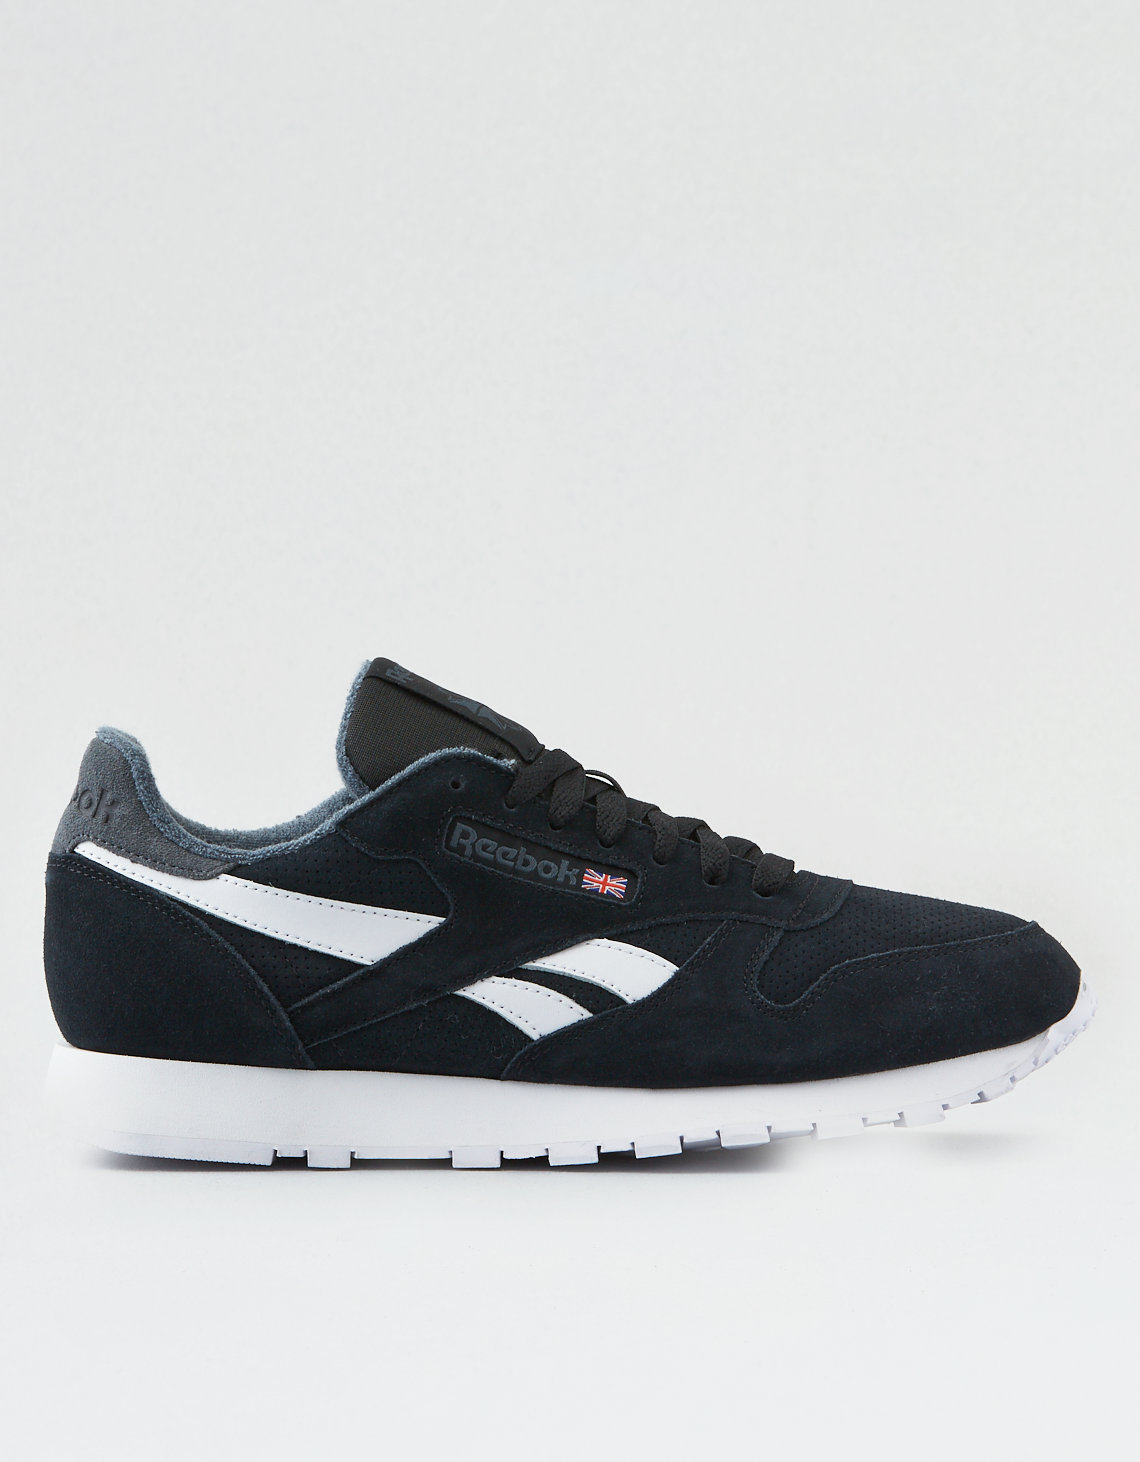 c4ca3529bc7 Reebok Classic Leather MU Sneaker. Placeholder image. Product Image